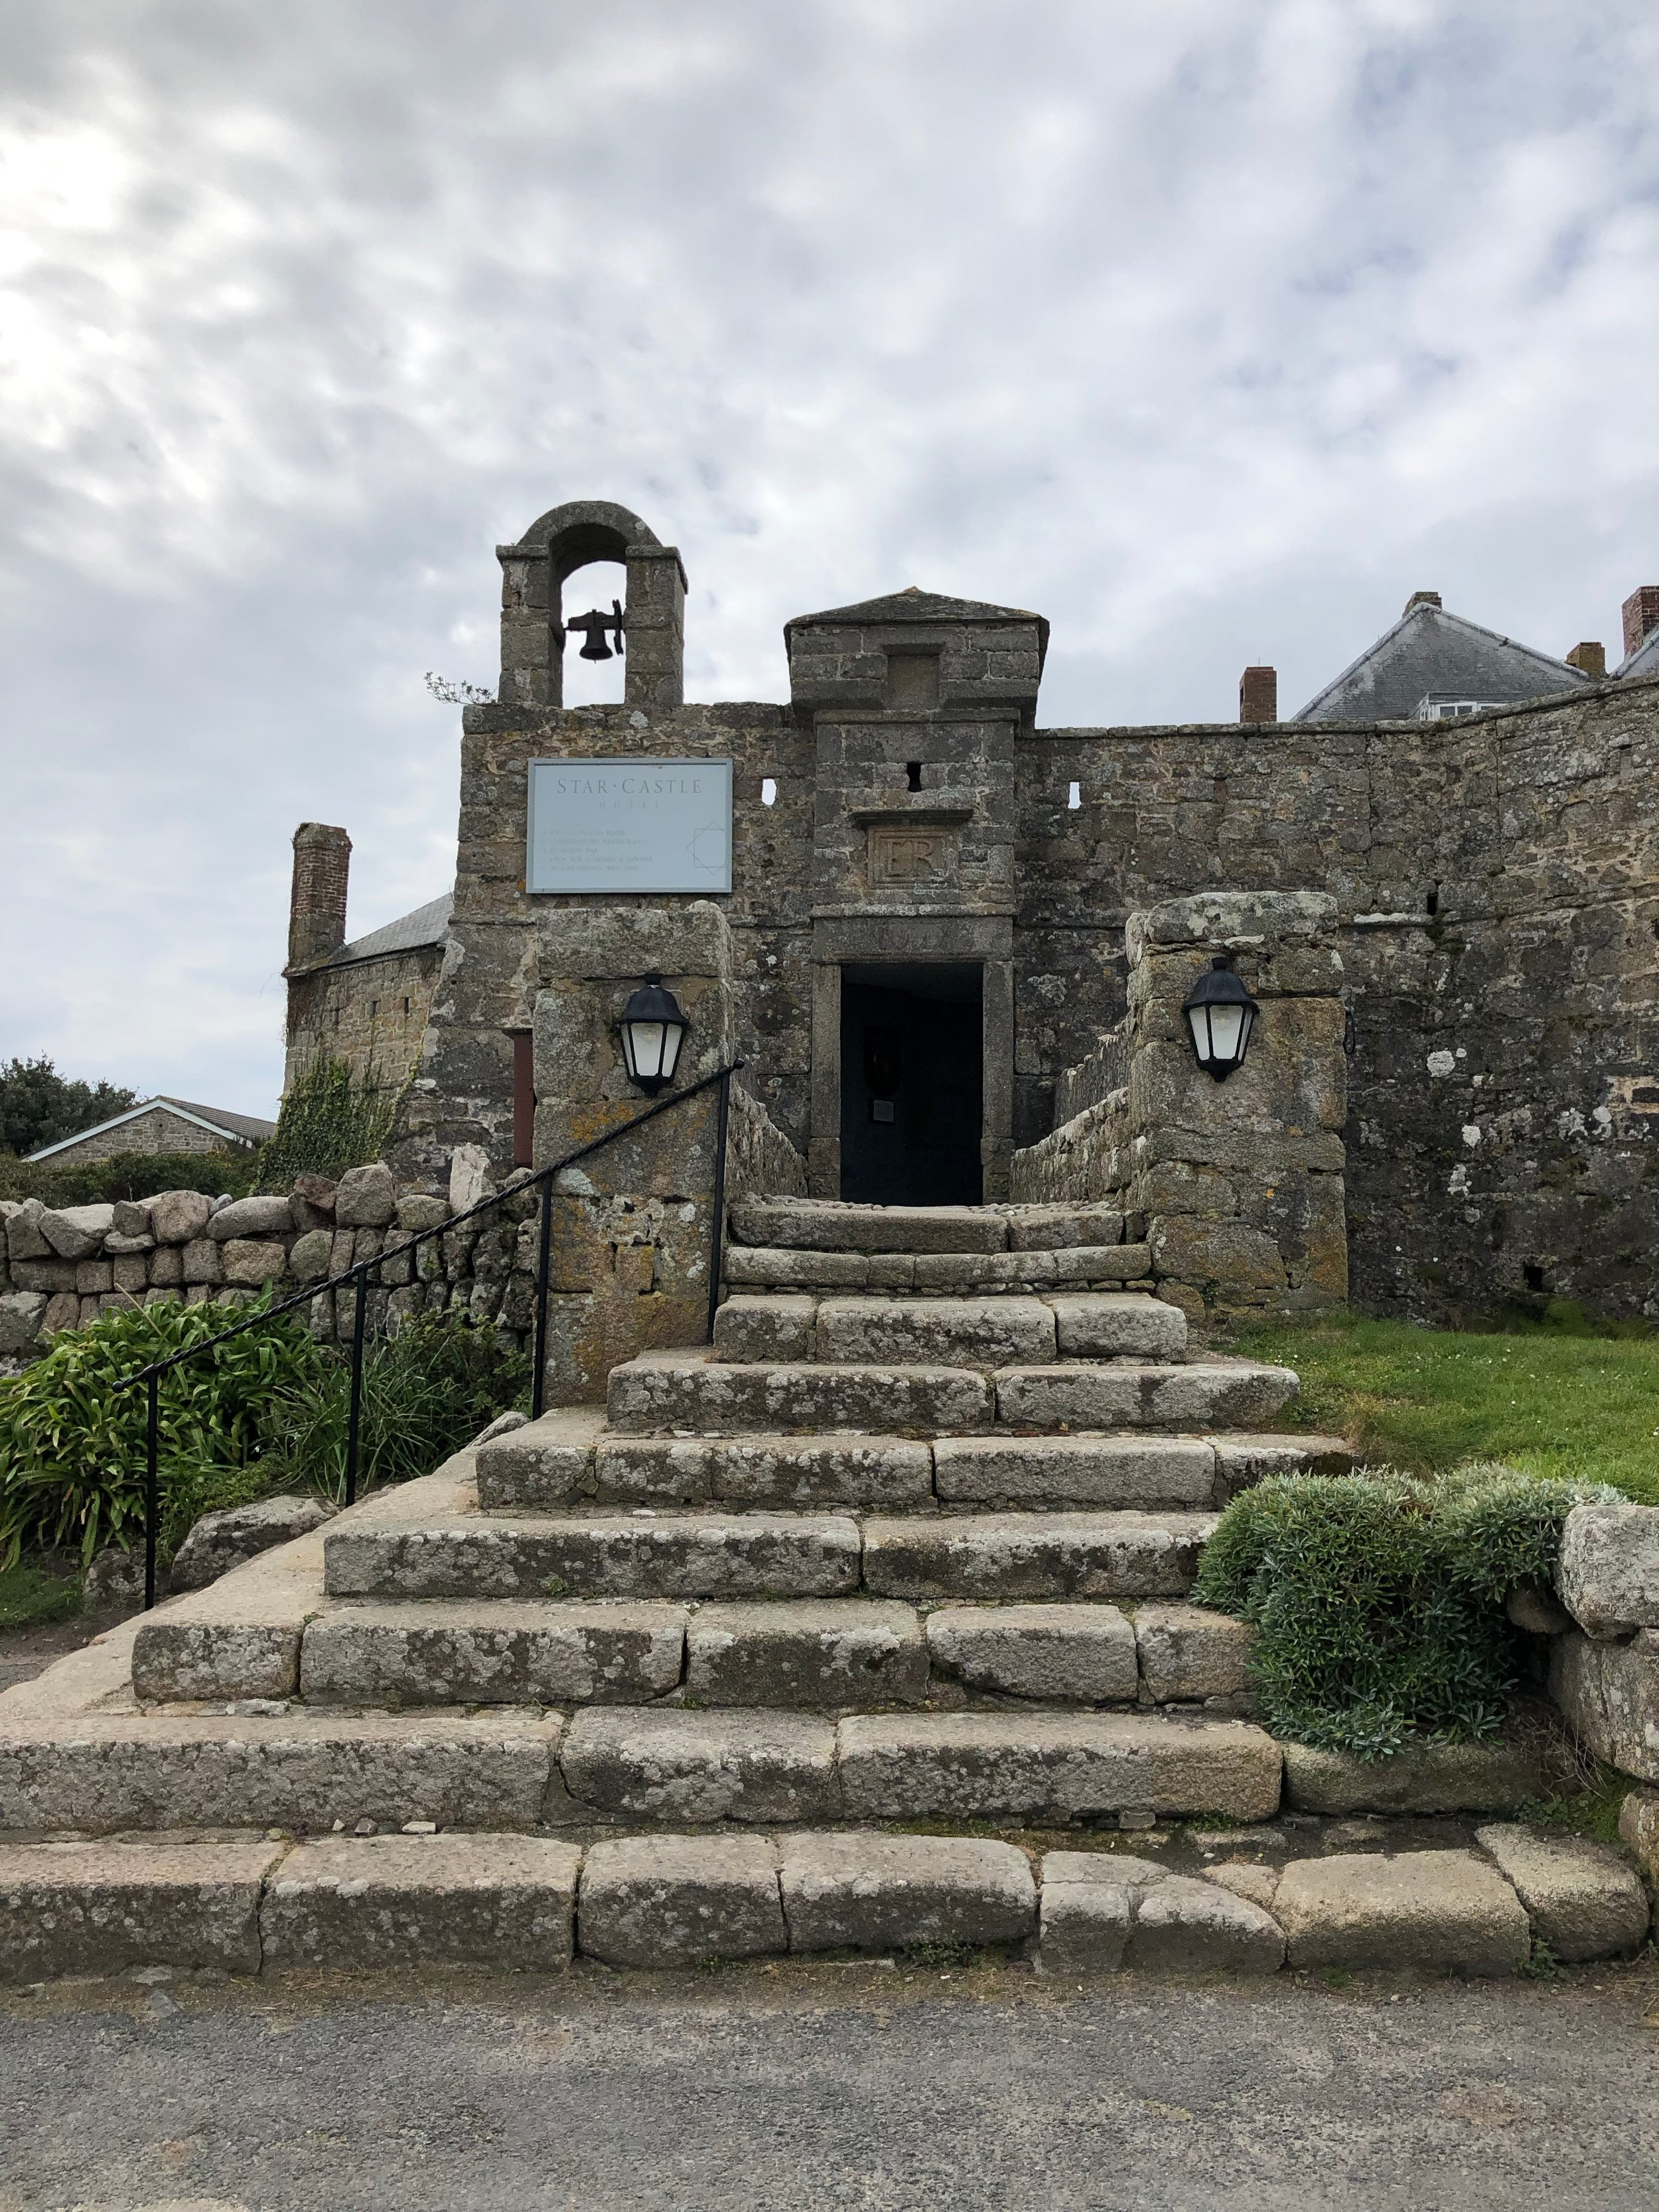 The entrance to the Star Castle Hotel.jpg